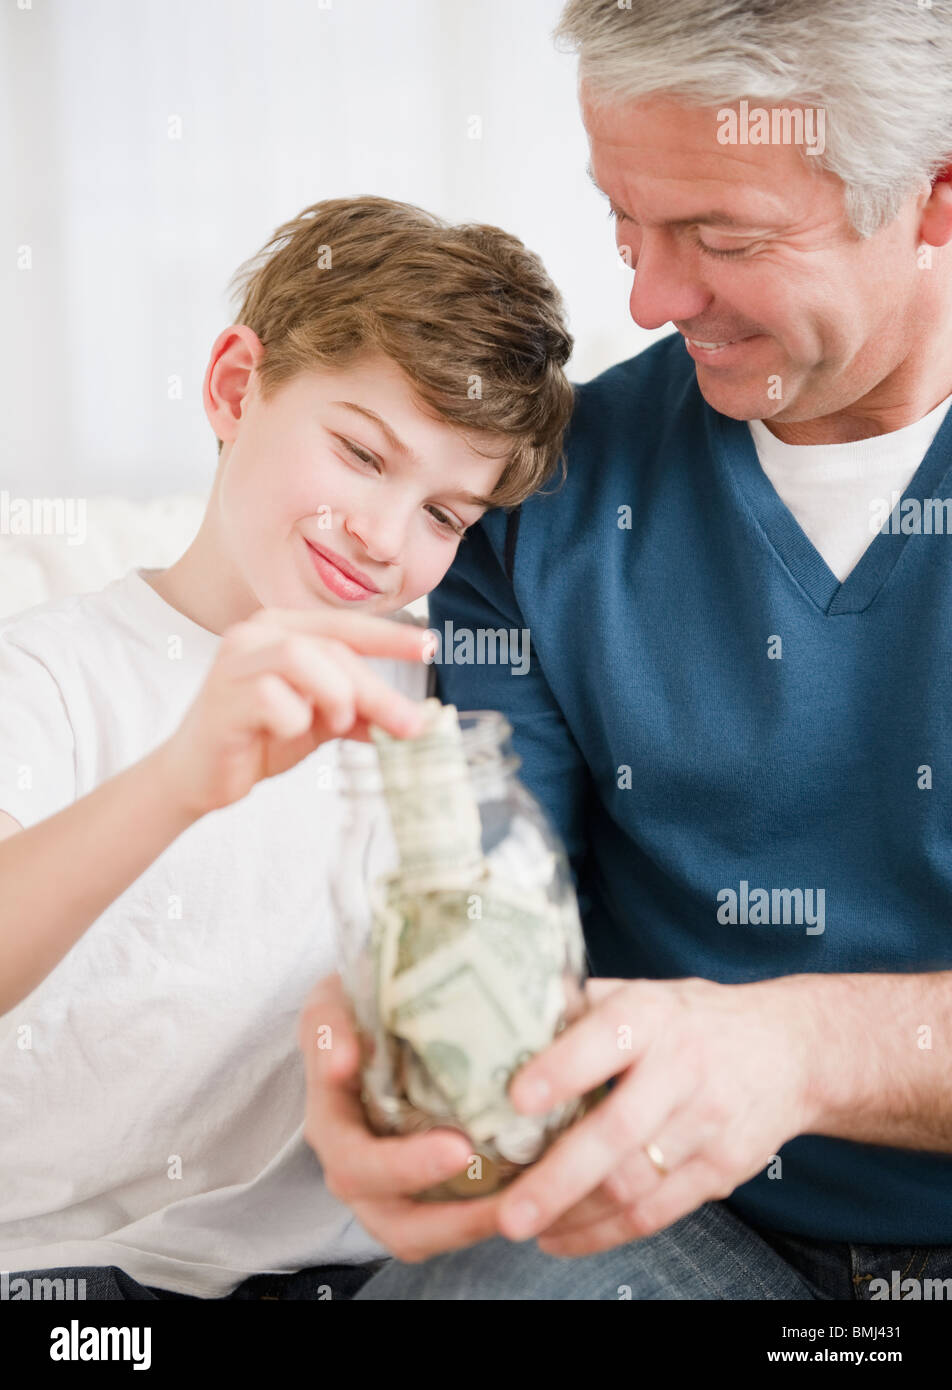 Father and son putting money in jar - Stock Image